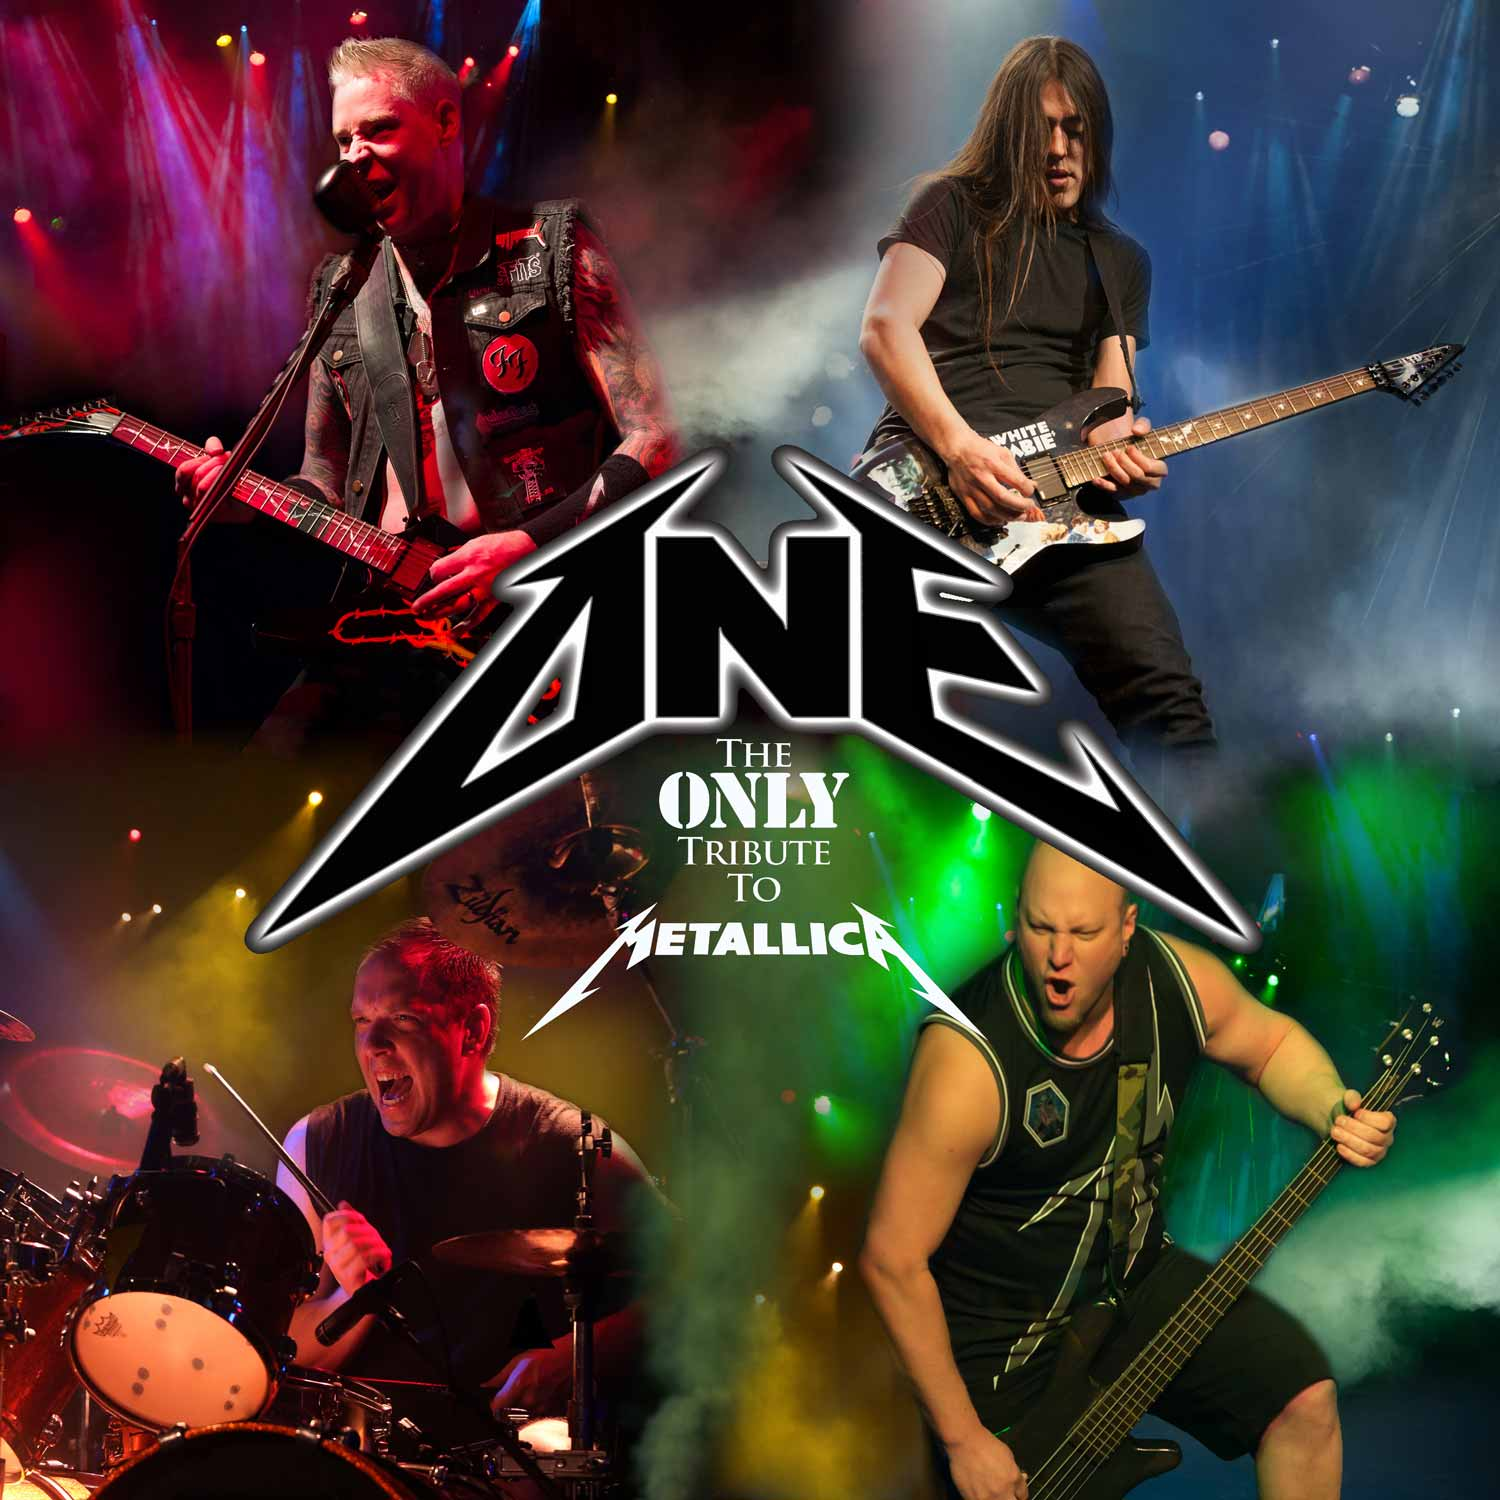 One - The Only Tribute to Metallica